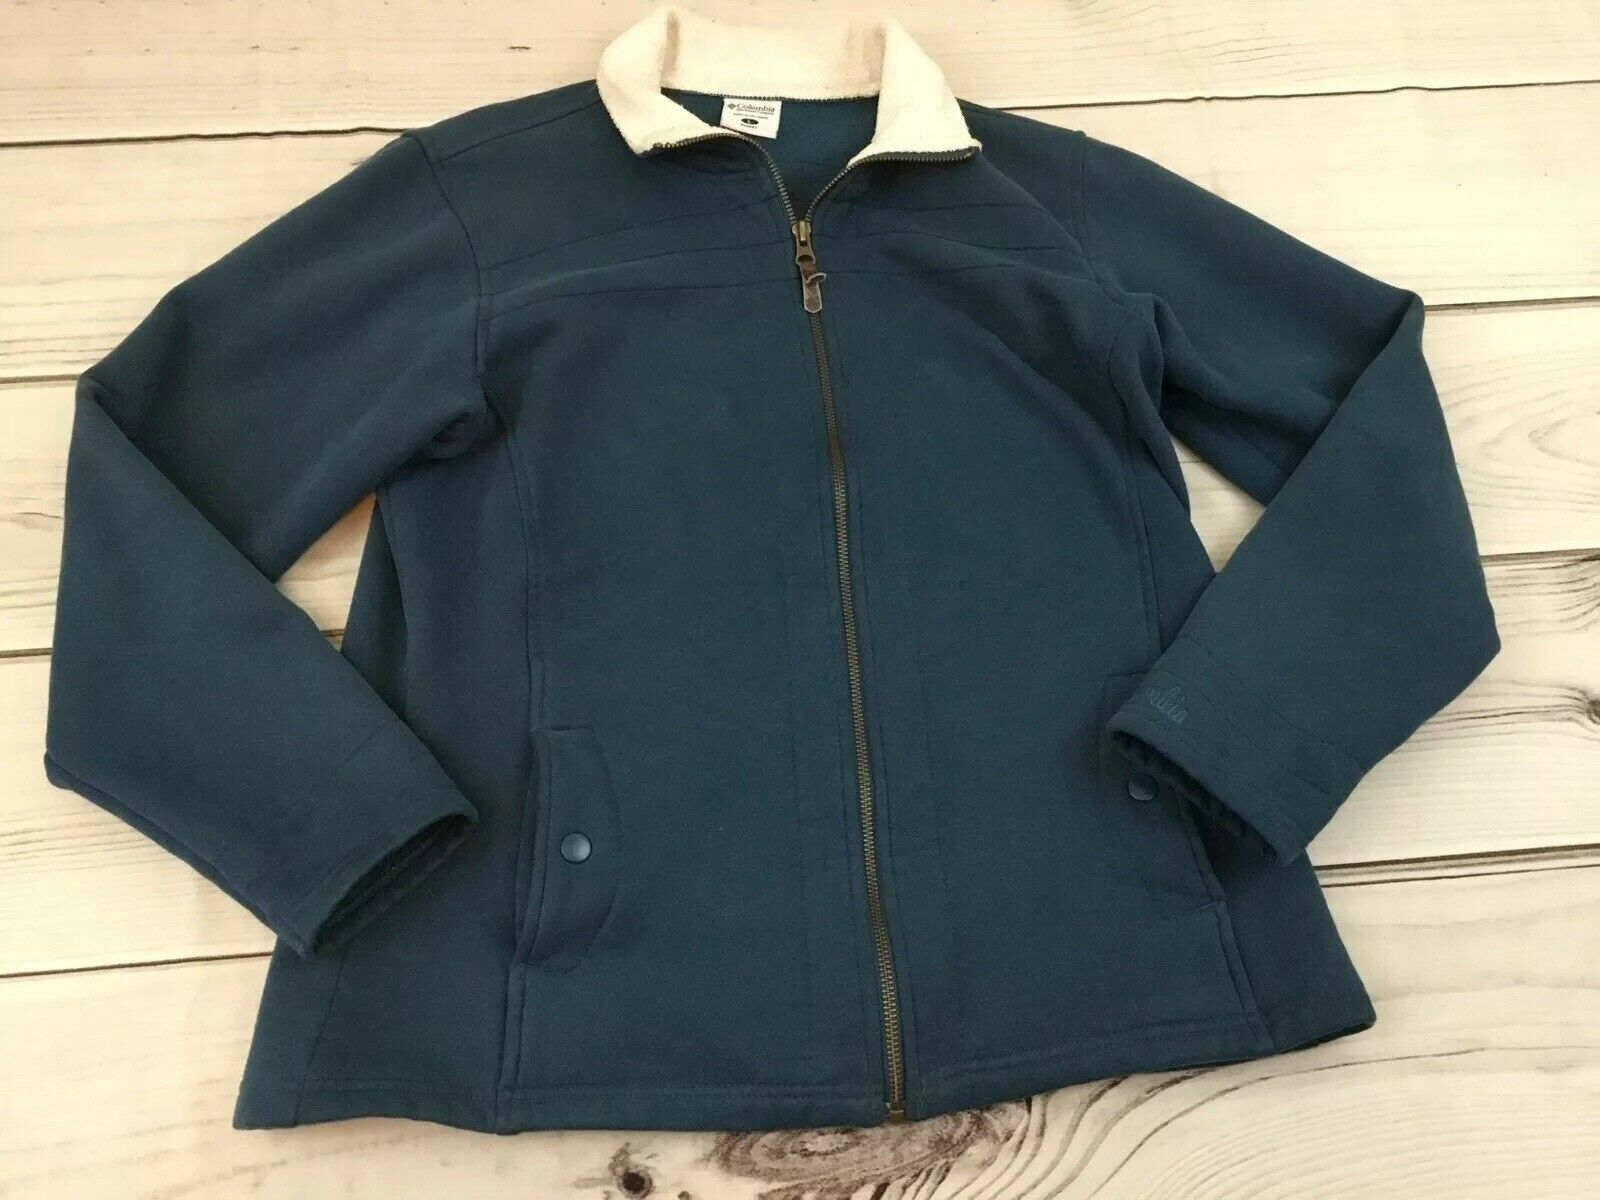 COLUMBIA Woman's Large Full Zip Jacket Teal Green 80% Cotton 20% Polyester